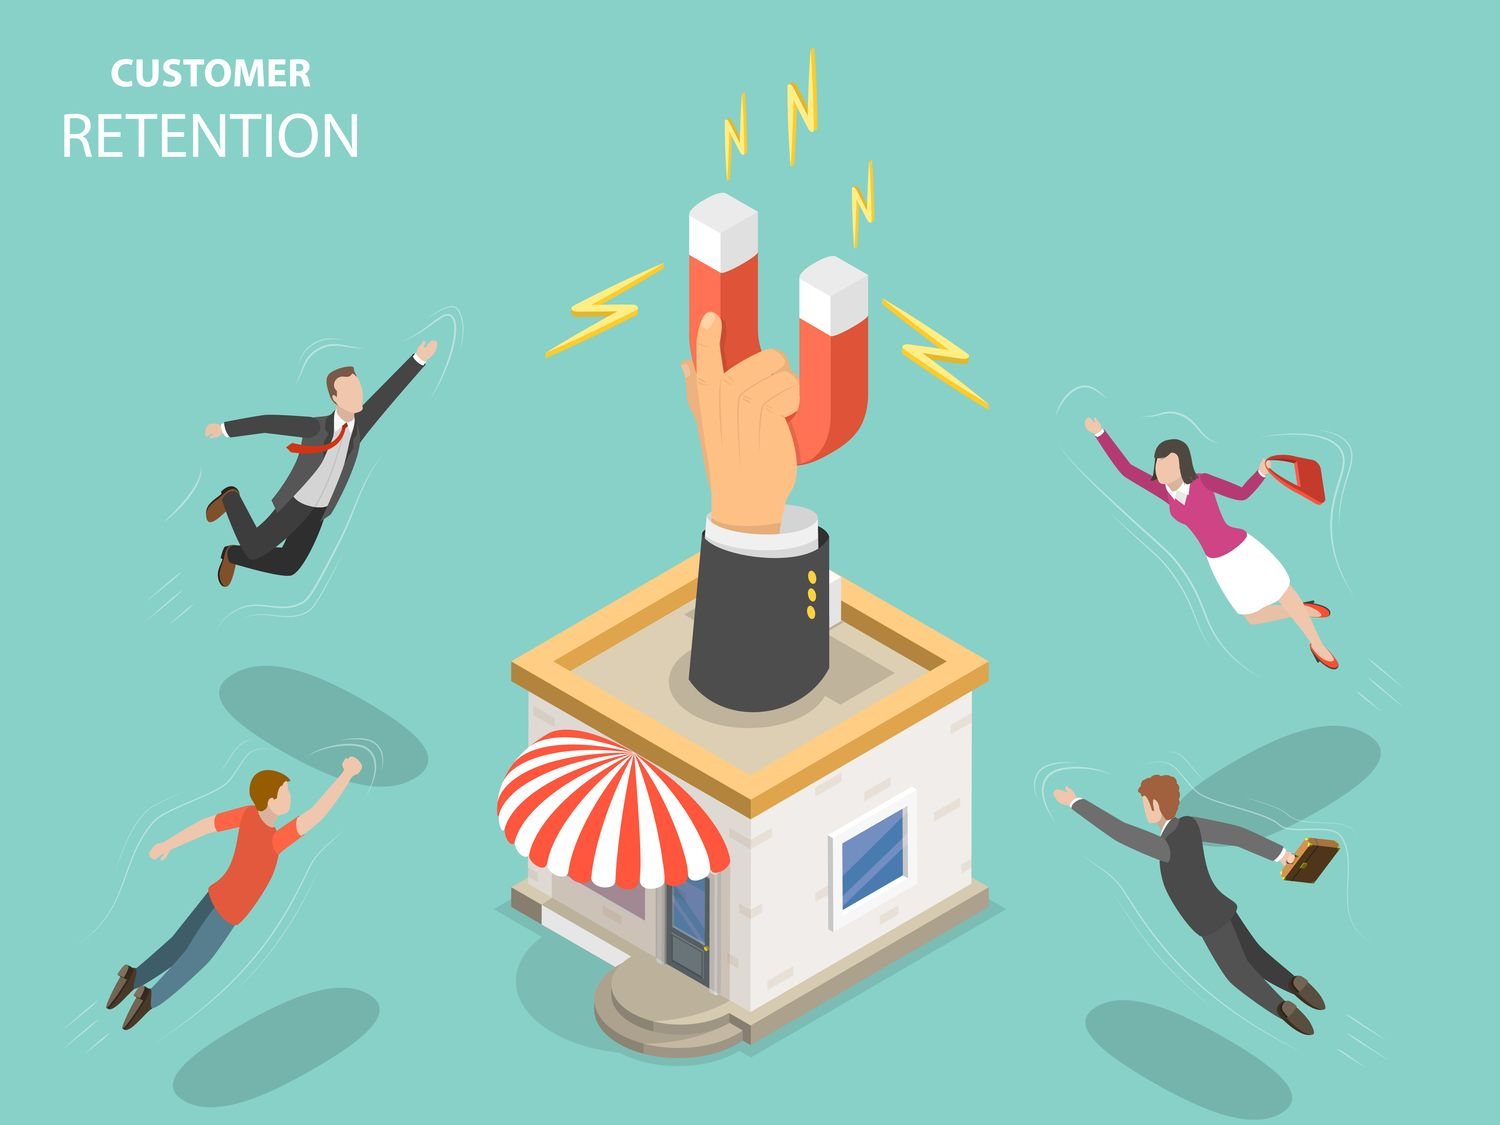 announcing product updates boosts customer retention rates